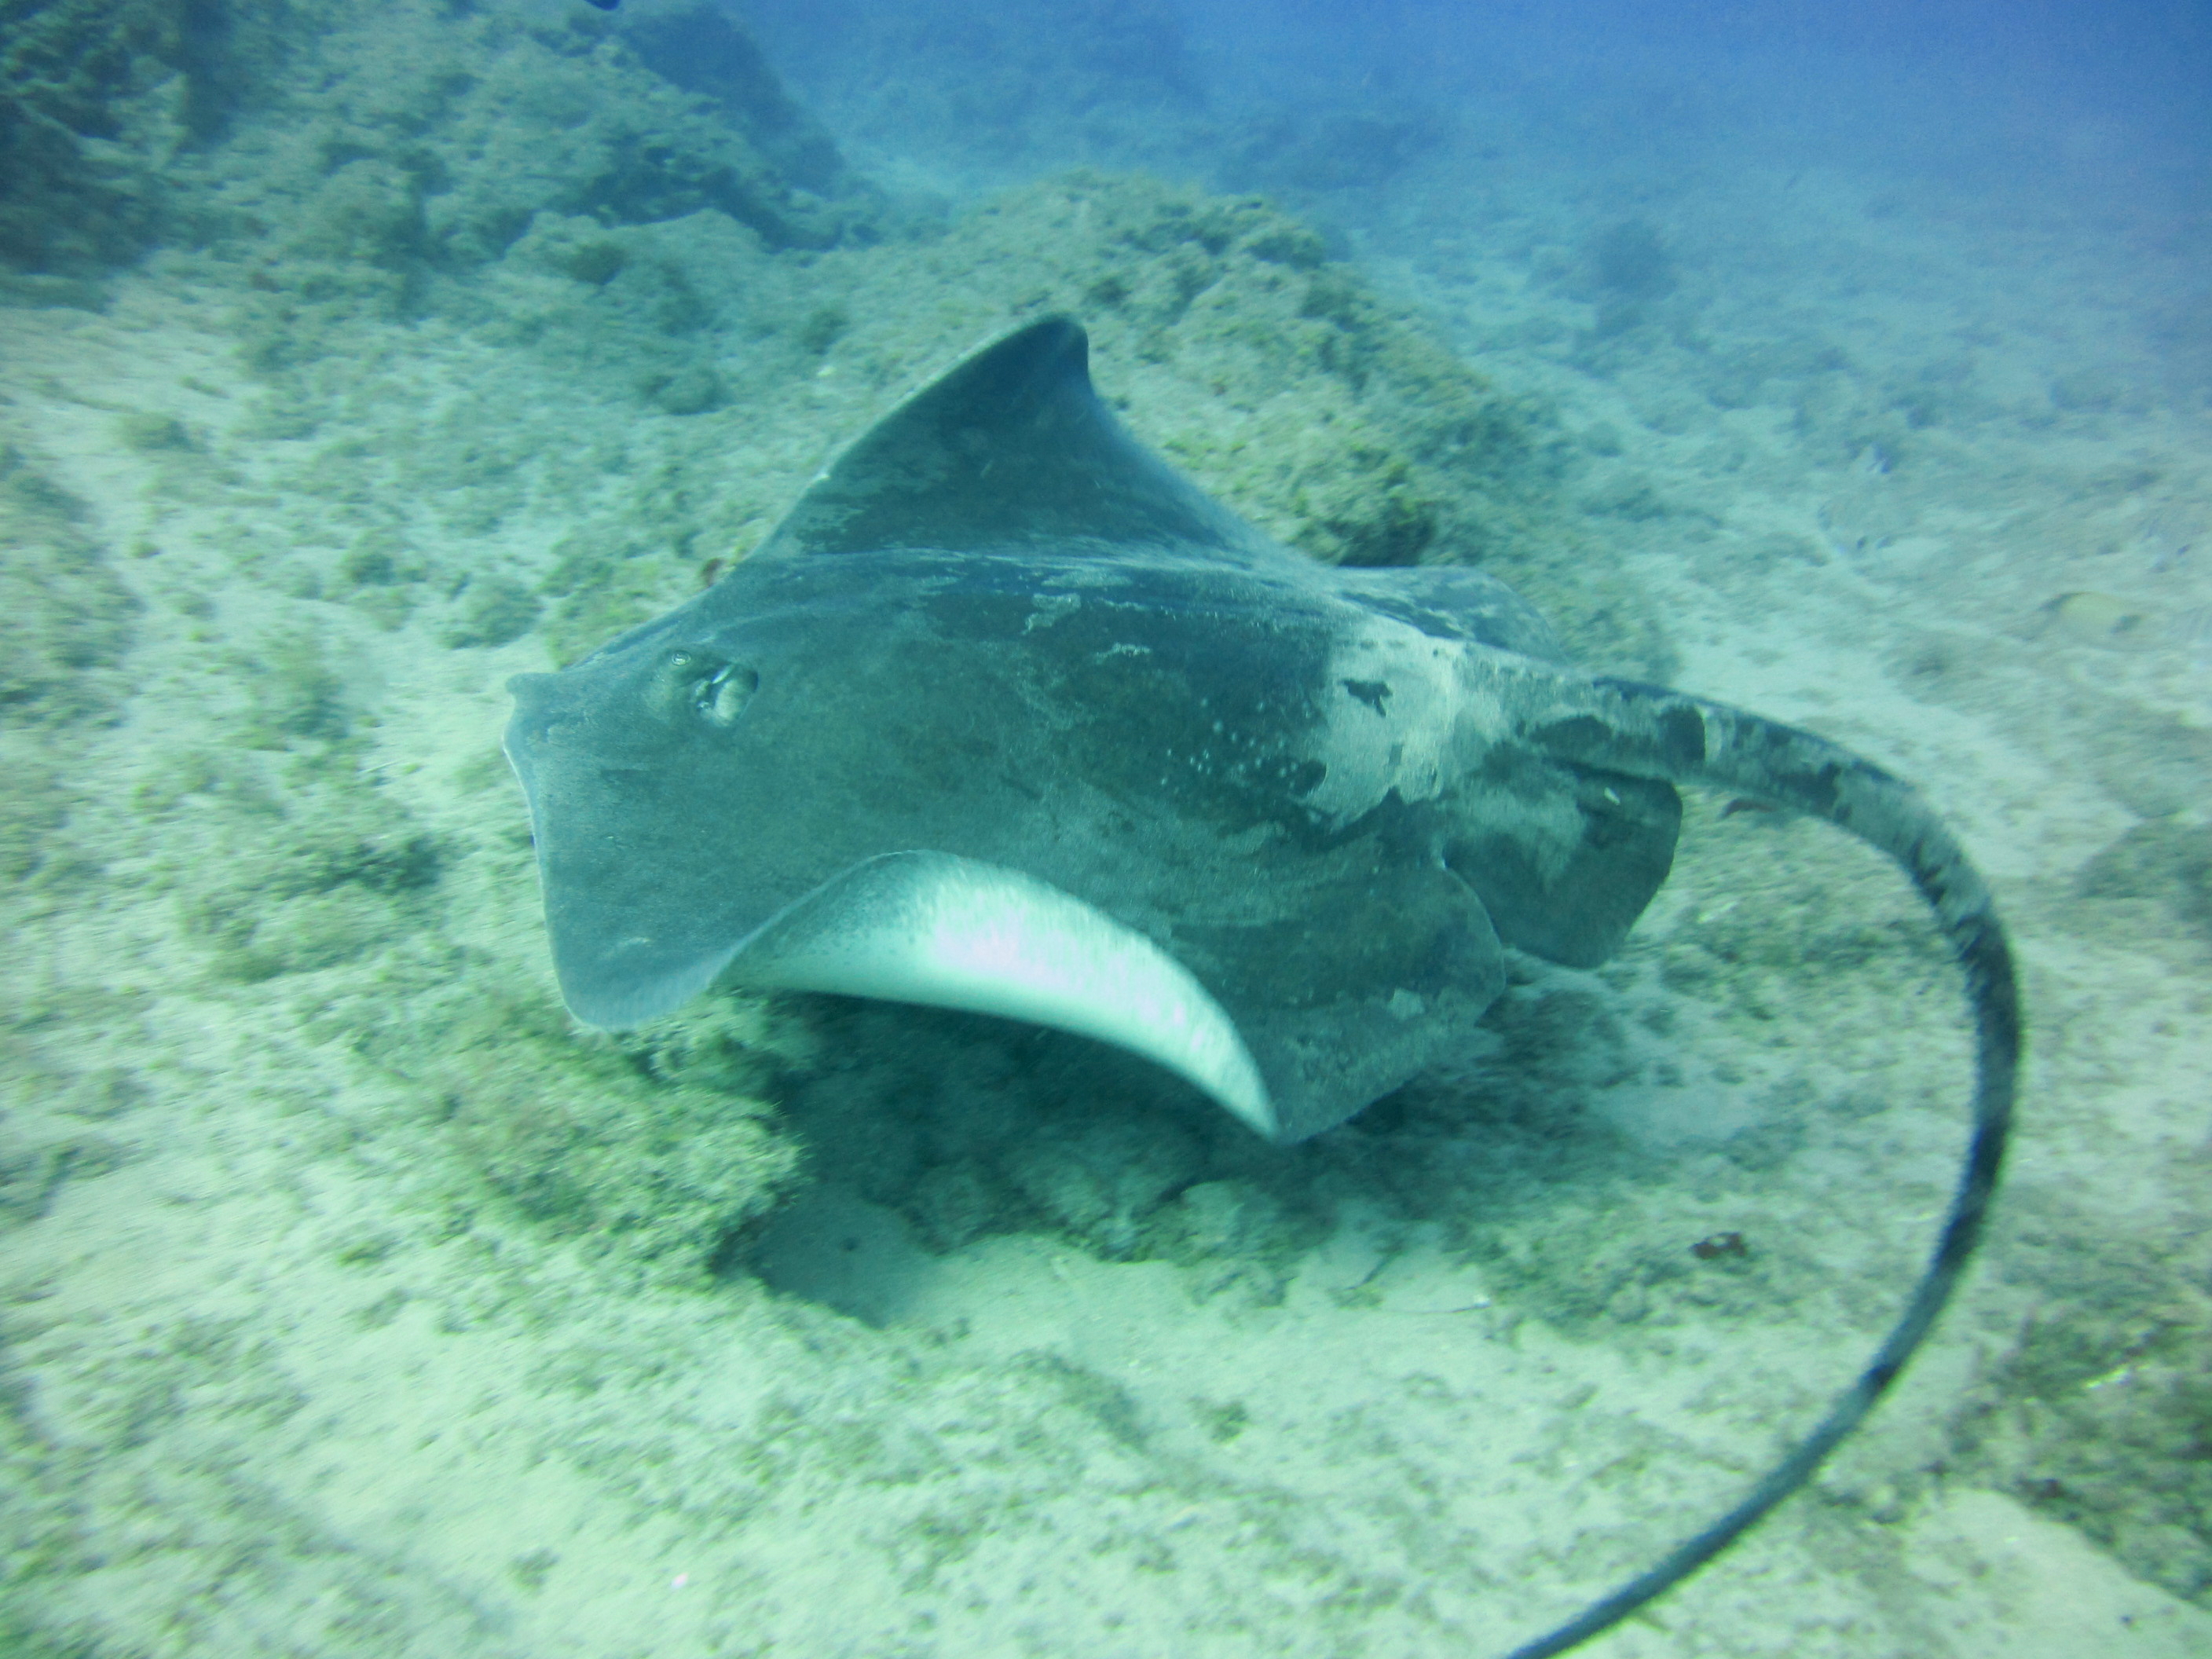 Diving-Tenerife-Aquatic-Life-Sharks-Sting-Rays-Fish (44)